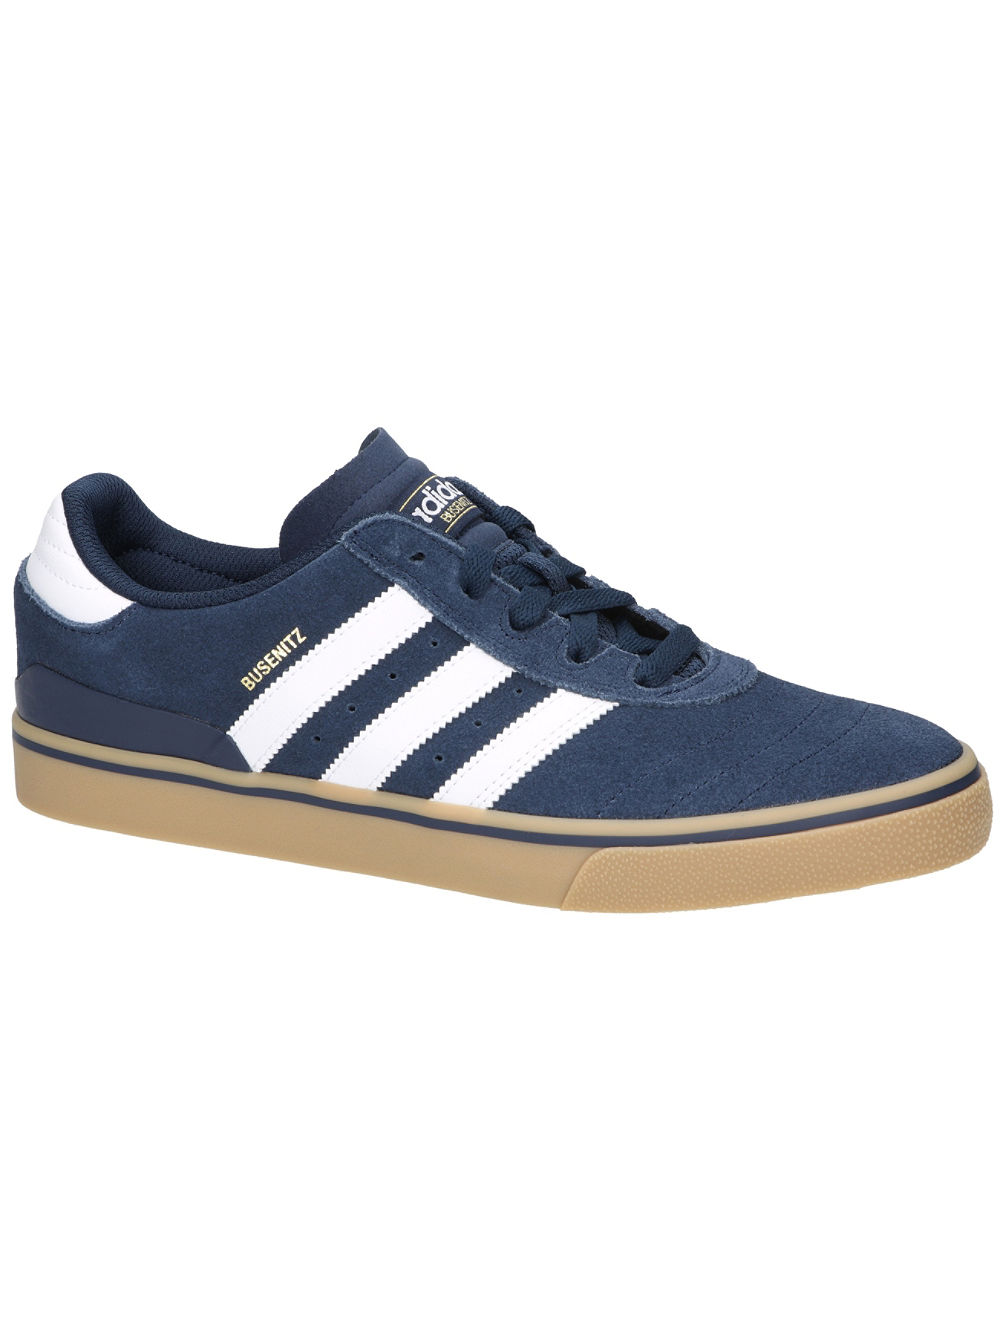 Busenitz Vulc ADV Skate Shoes